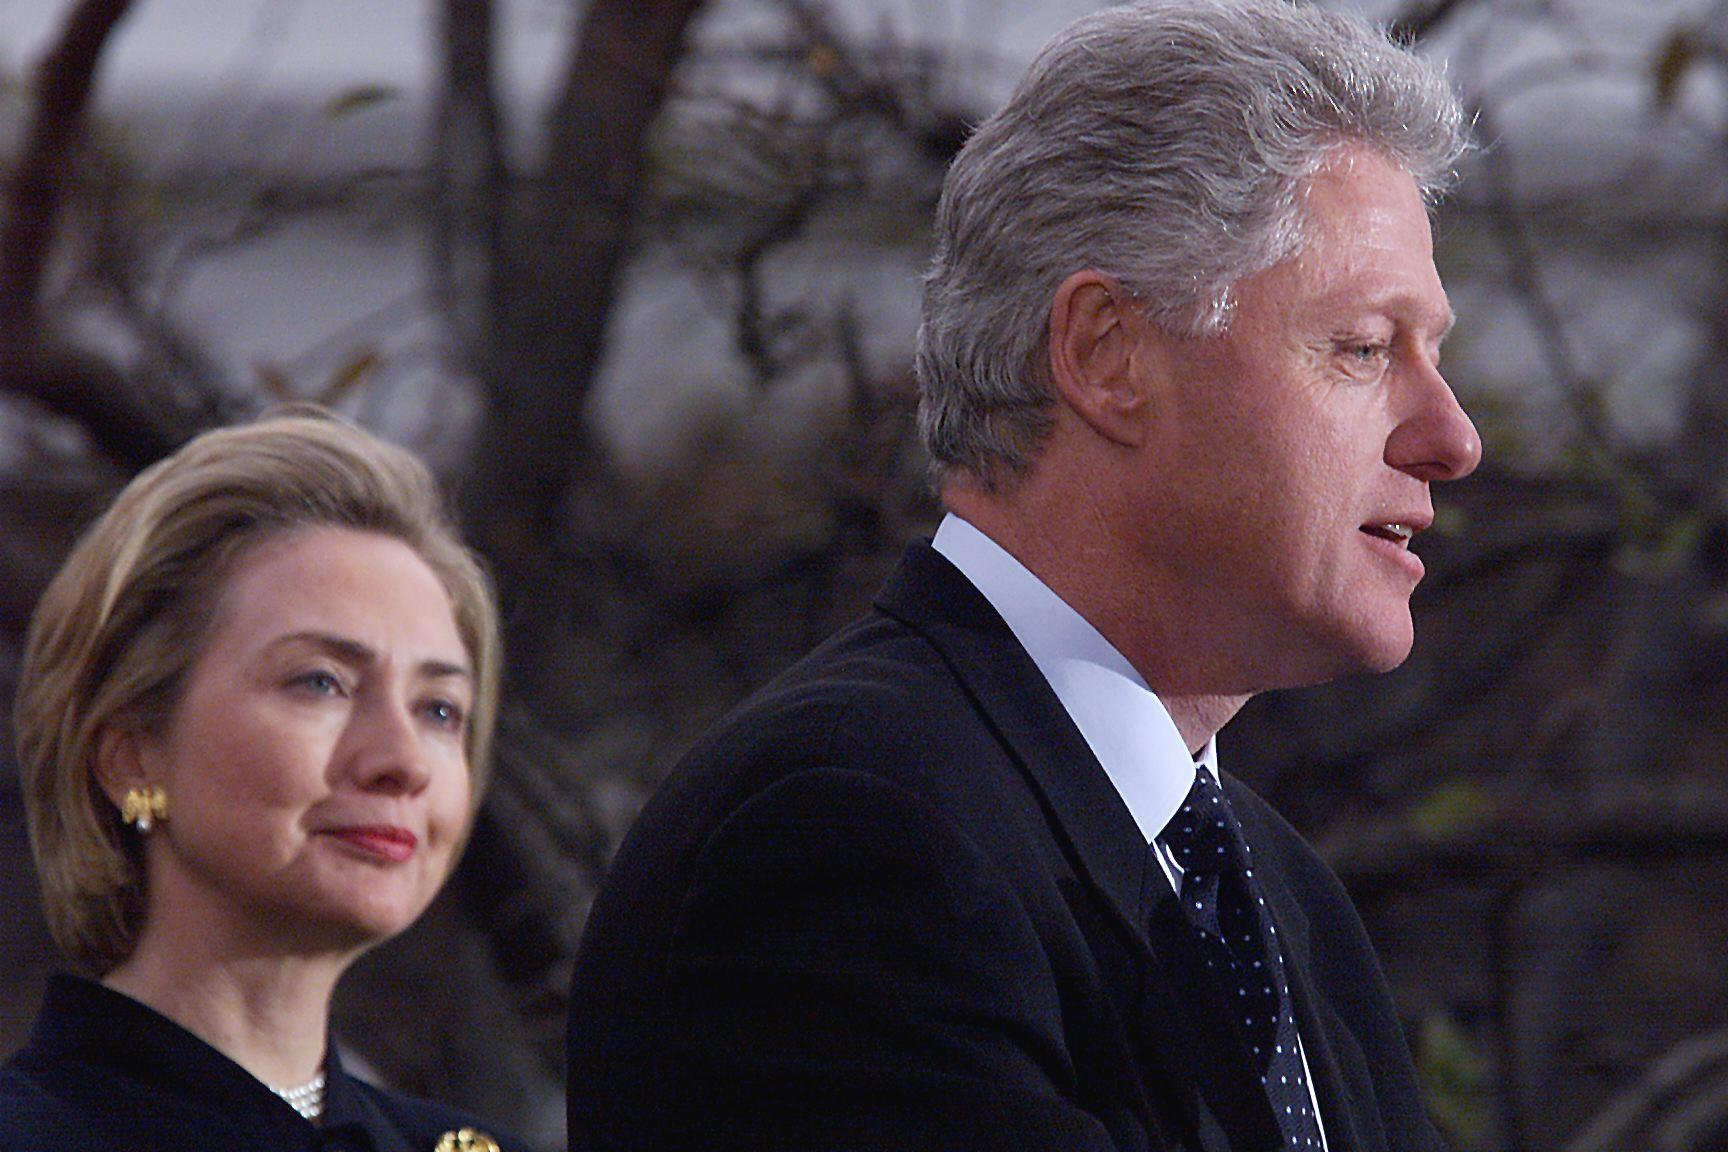 President Bill Clinton (R) appears with First Lady Hillary Clinton to make a statement to reporters outside the oval office following his impeachment by the U.S. House of Representatives.